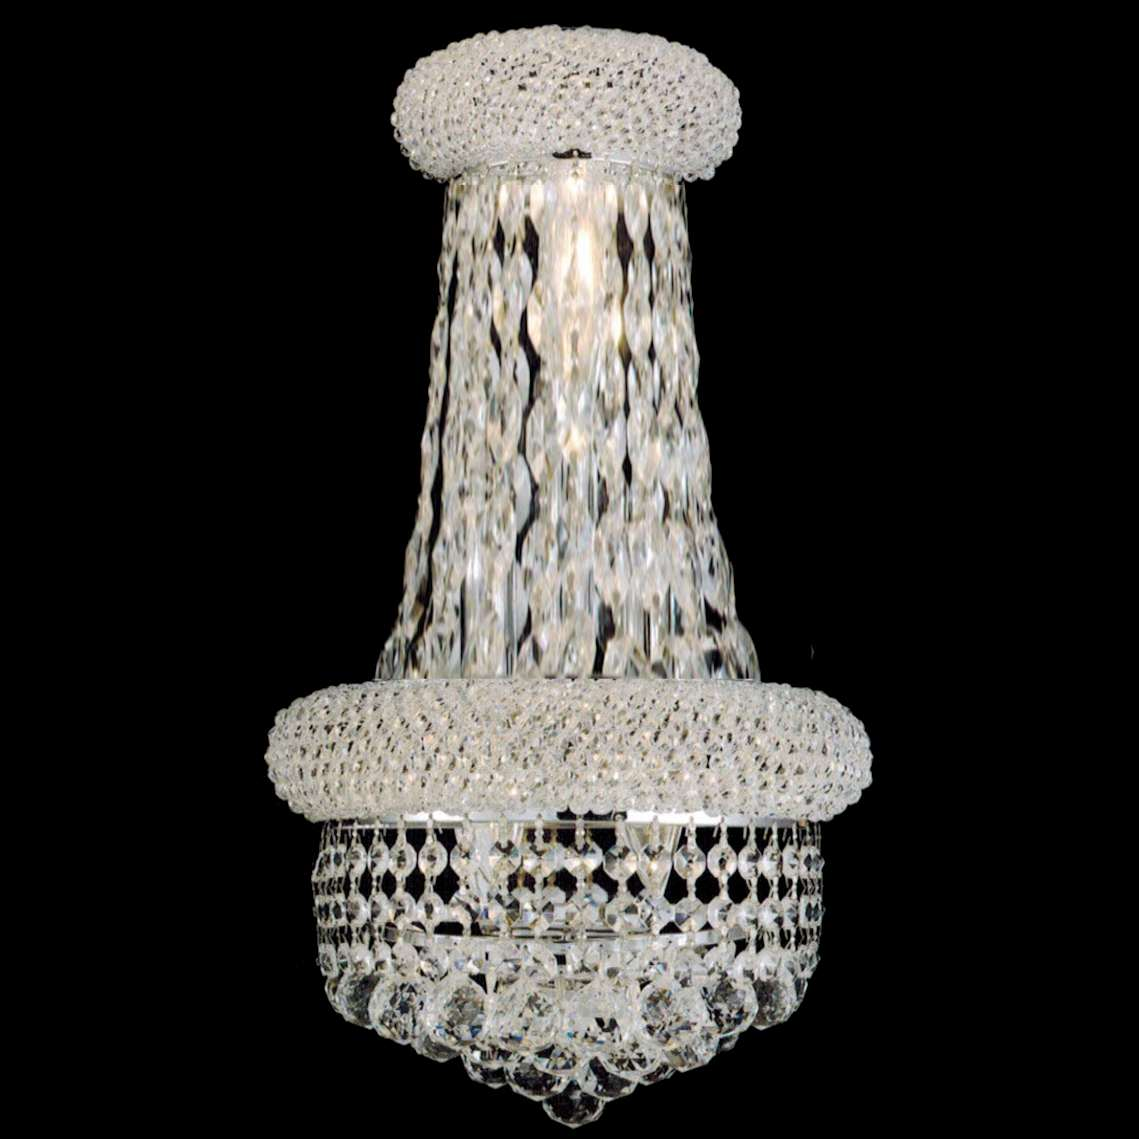 Brizzo lighting stores empire crystal wall sconce chrome gold 4 picture of empire crystal wall sconce chrome gold 4 lights aloadofball Gallery